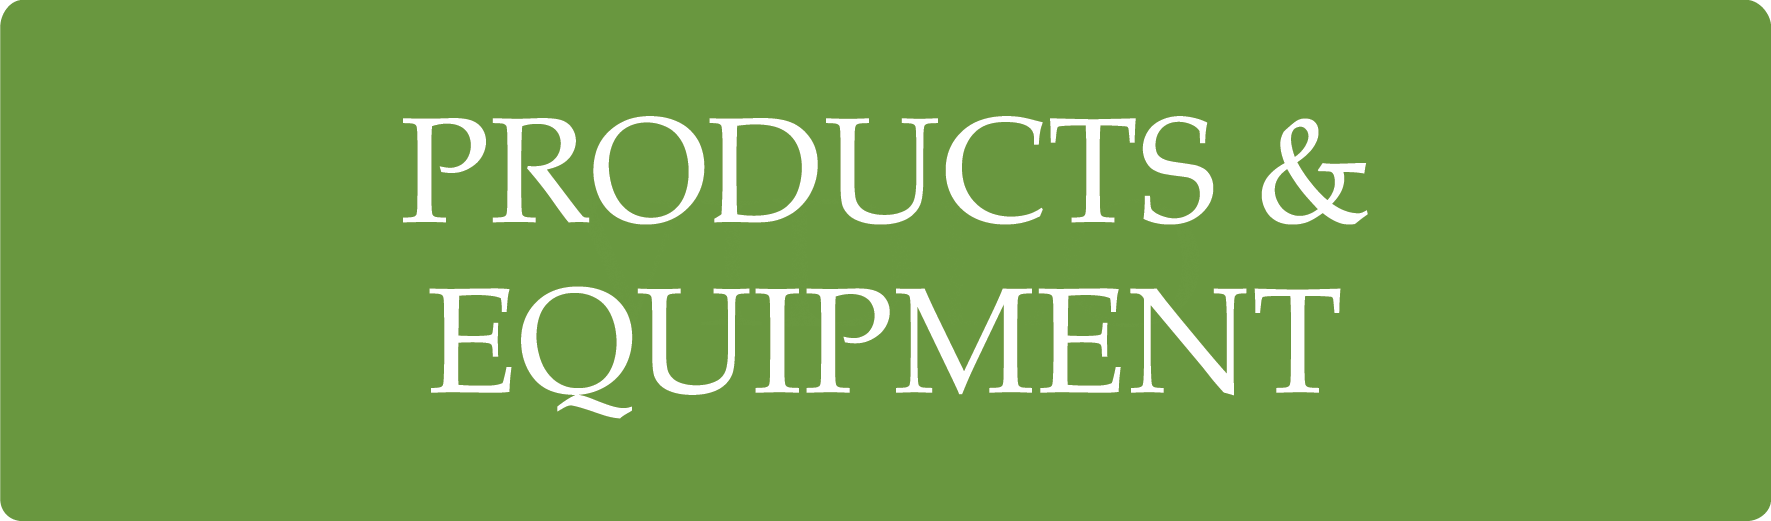 PRODUCTS_AND_EQUIPMENT.png